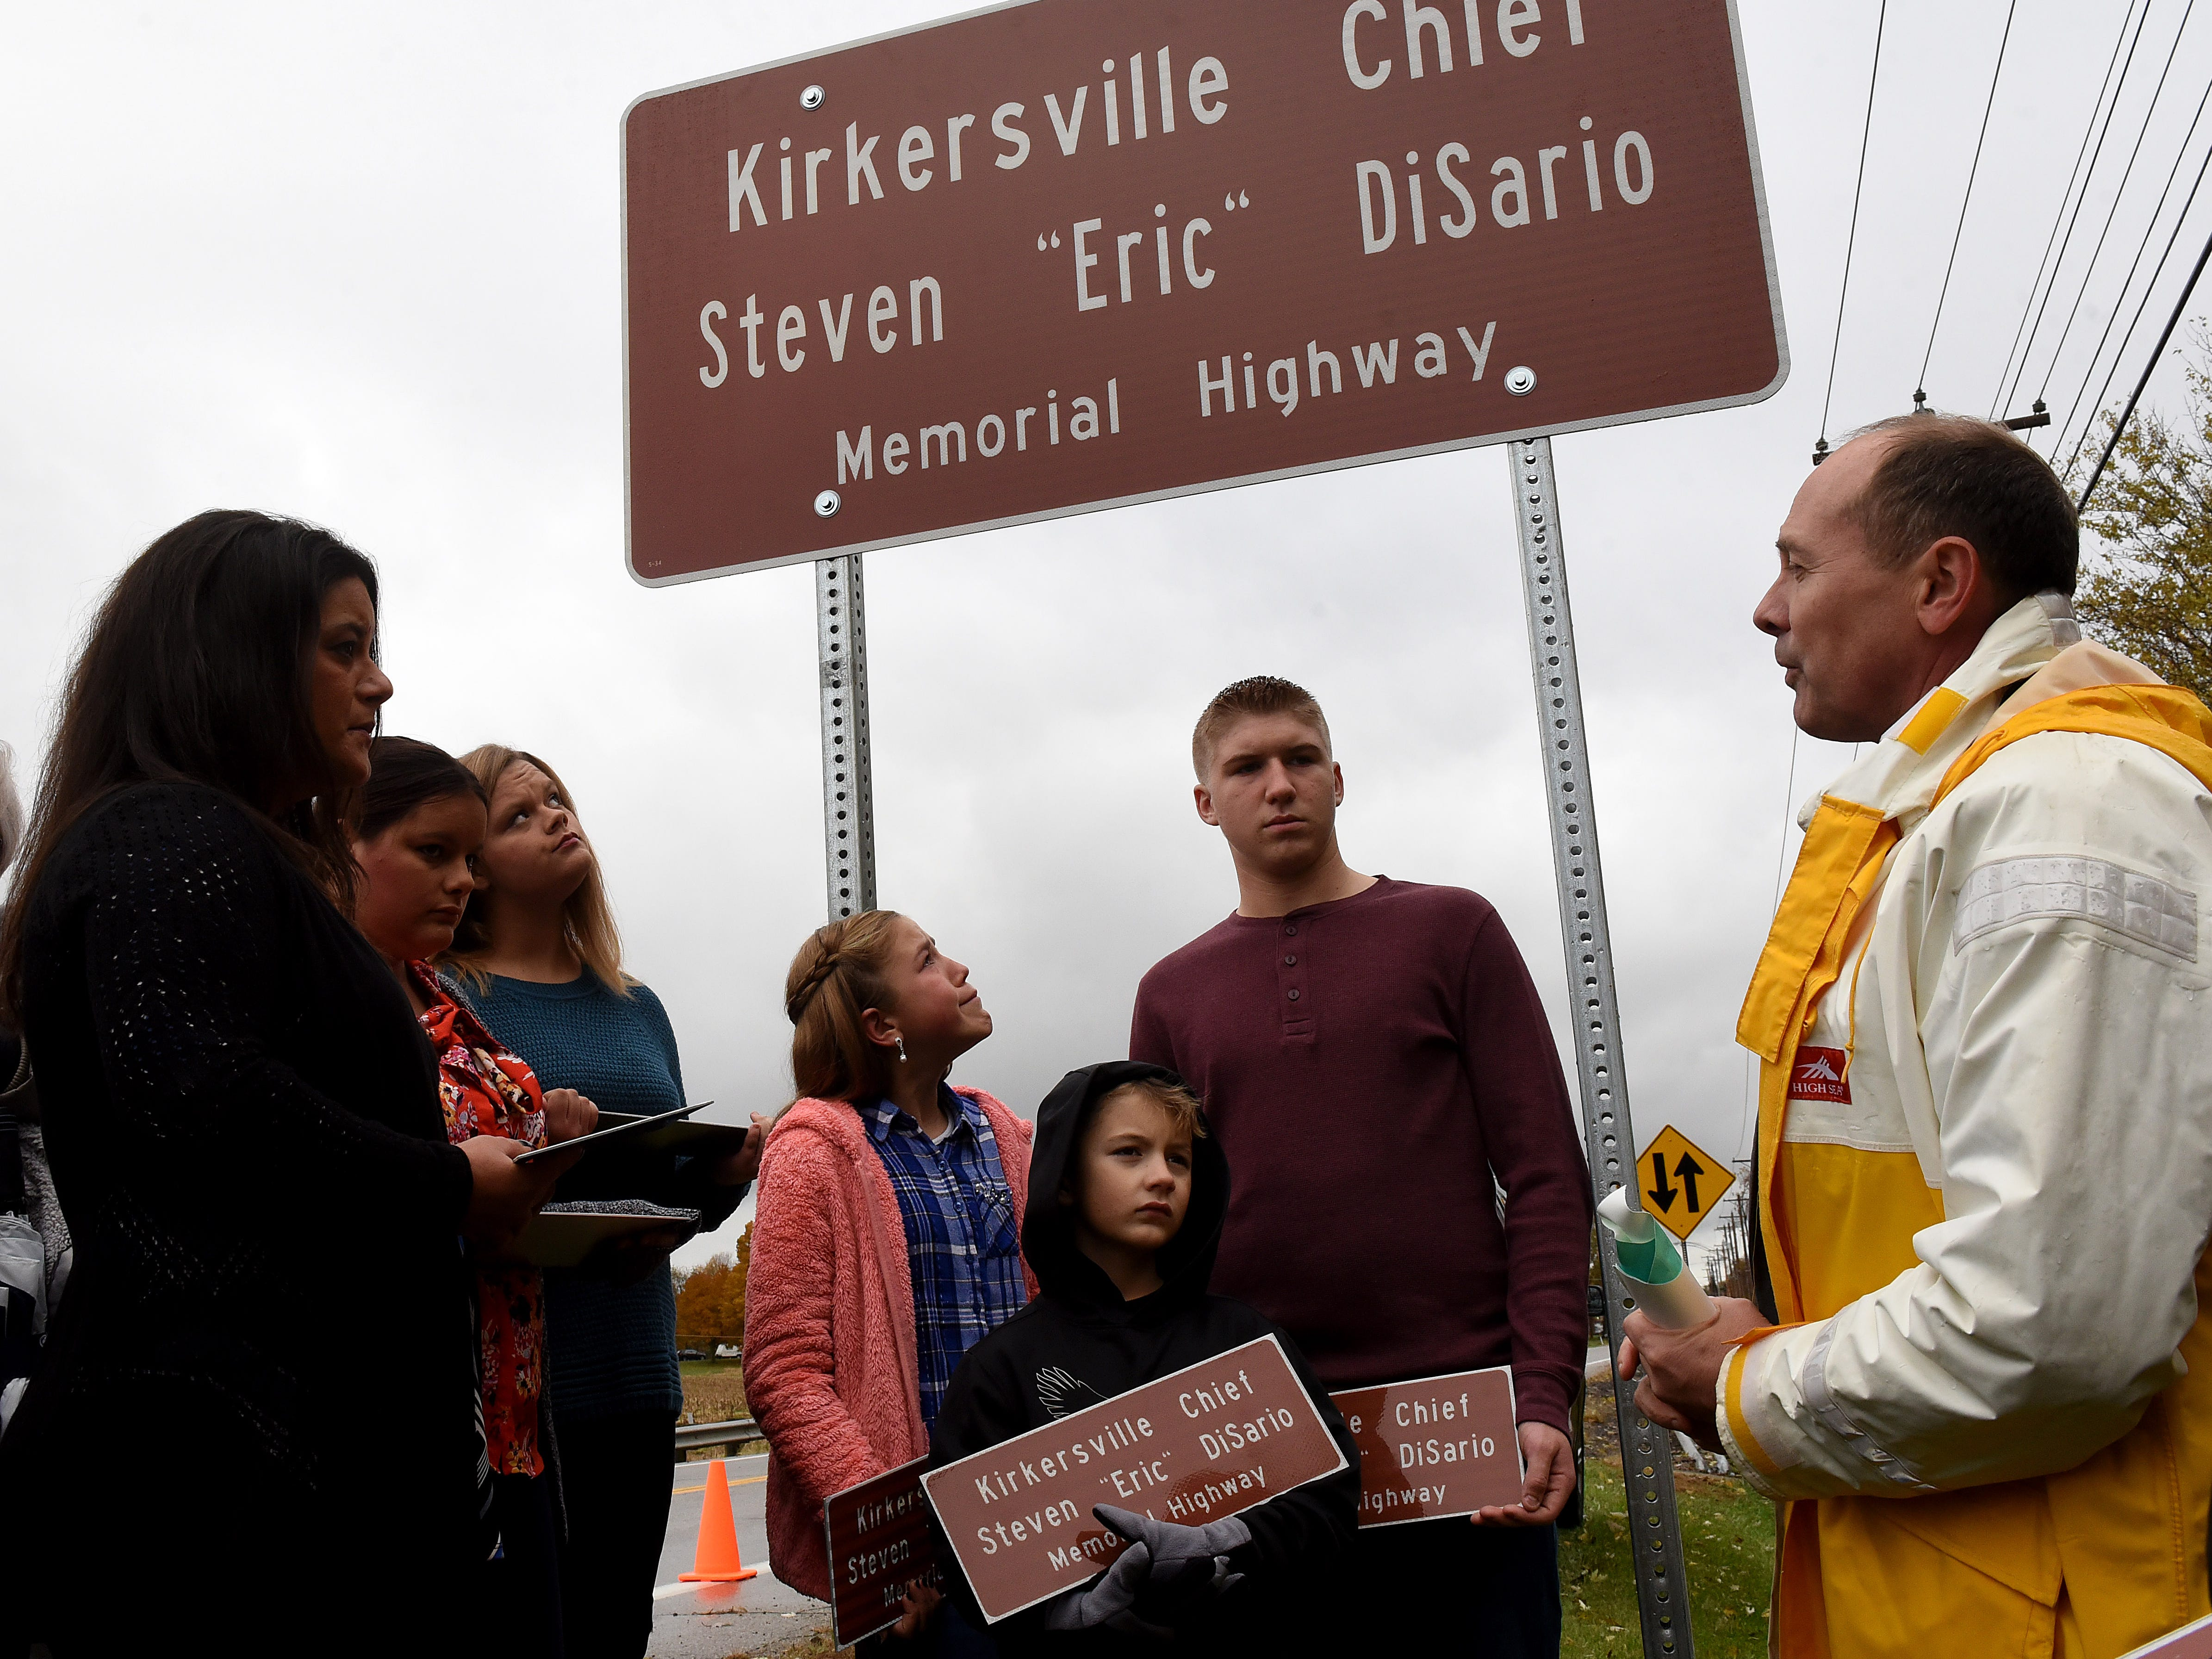 DiSario forever remembered with U.S. 40 naming